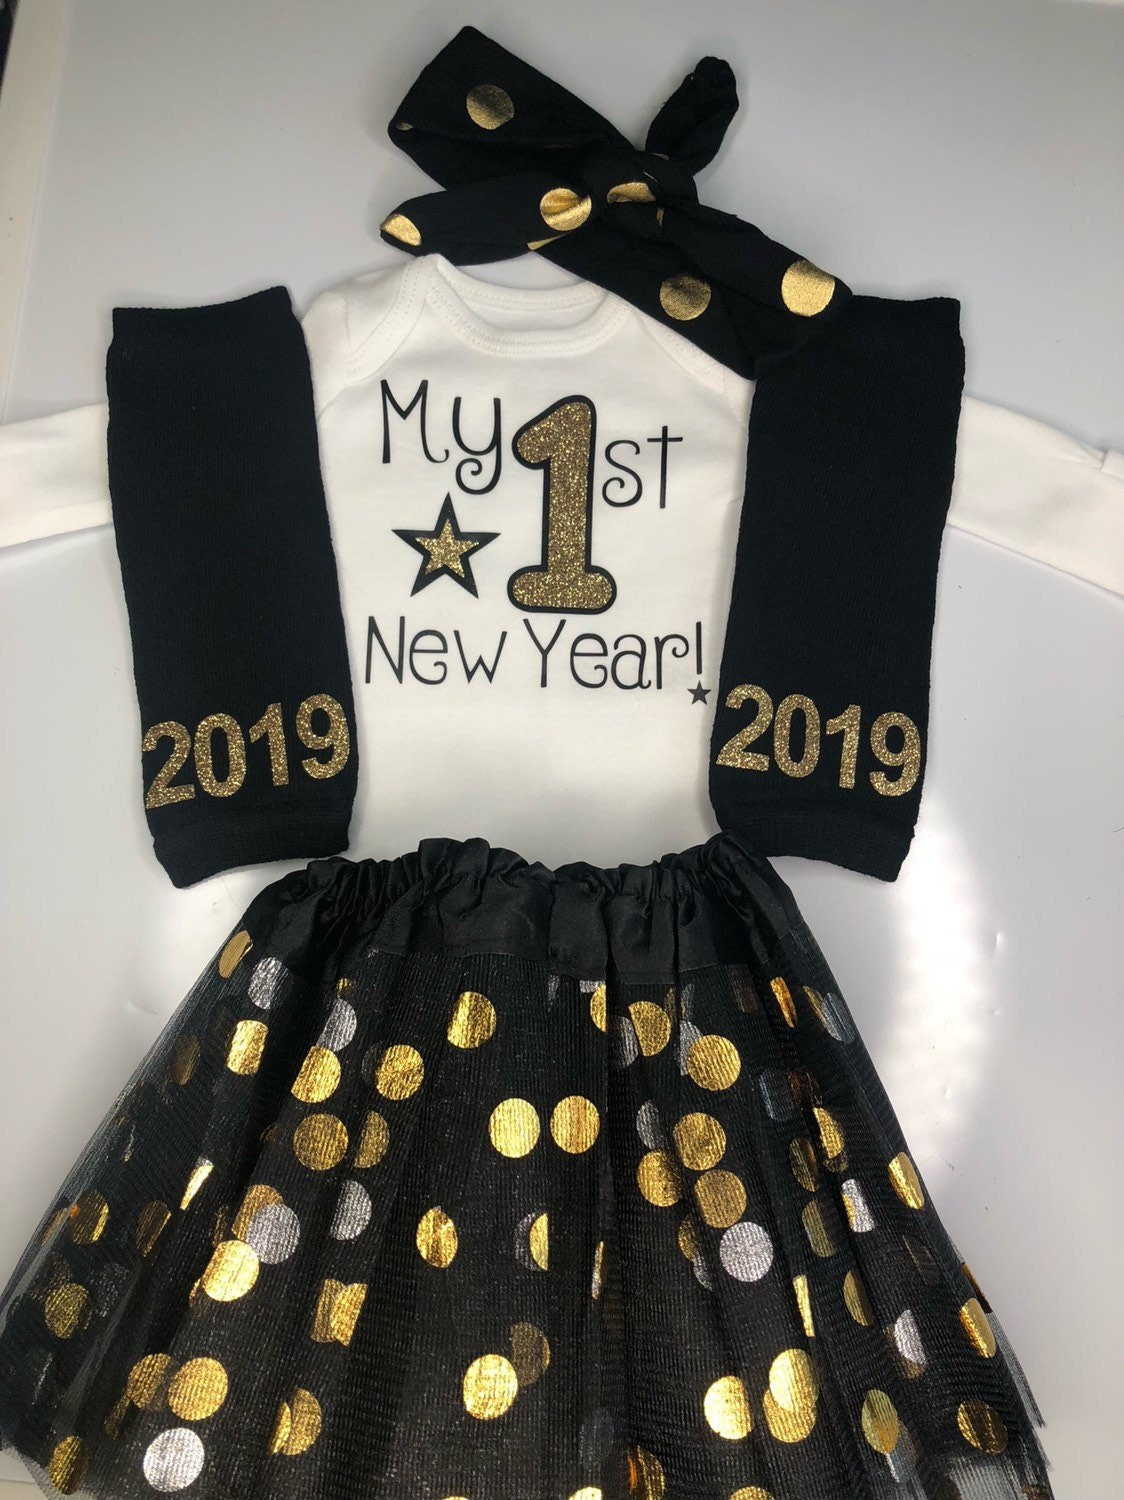 c733404e6bbe1 ... my first new years outfit - 2019 New years baby outfit - baby girl  photo prop- gold black New Years tutu. gallery photo ...